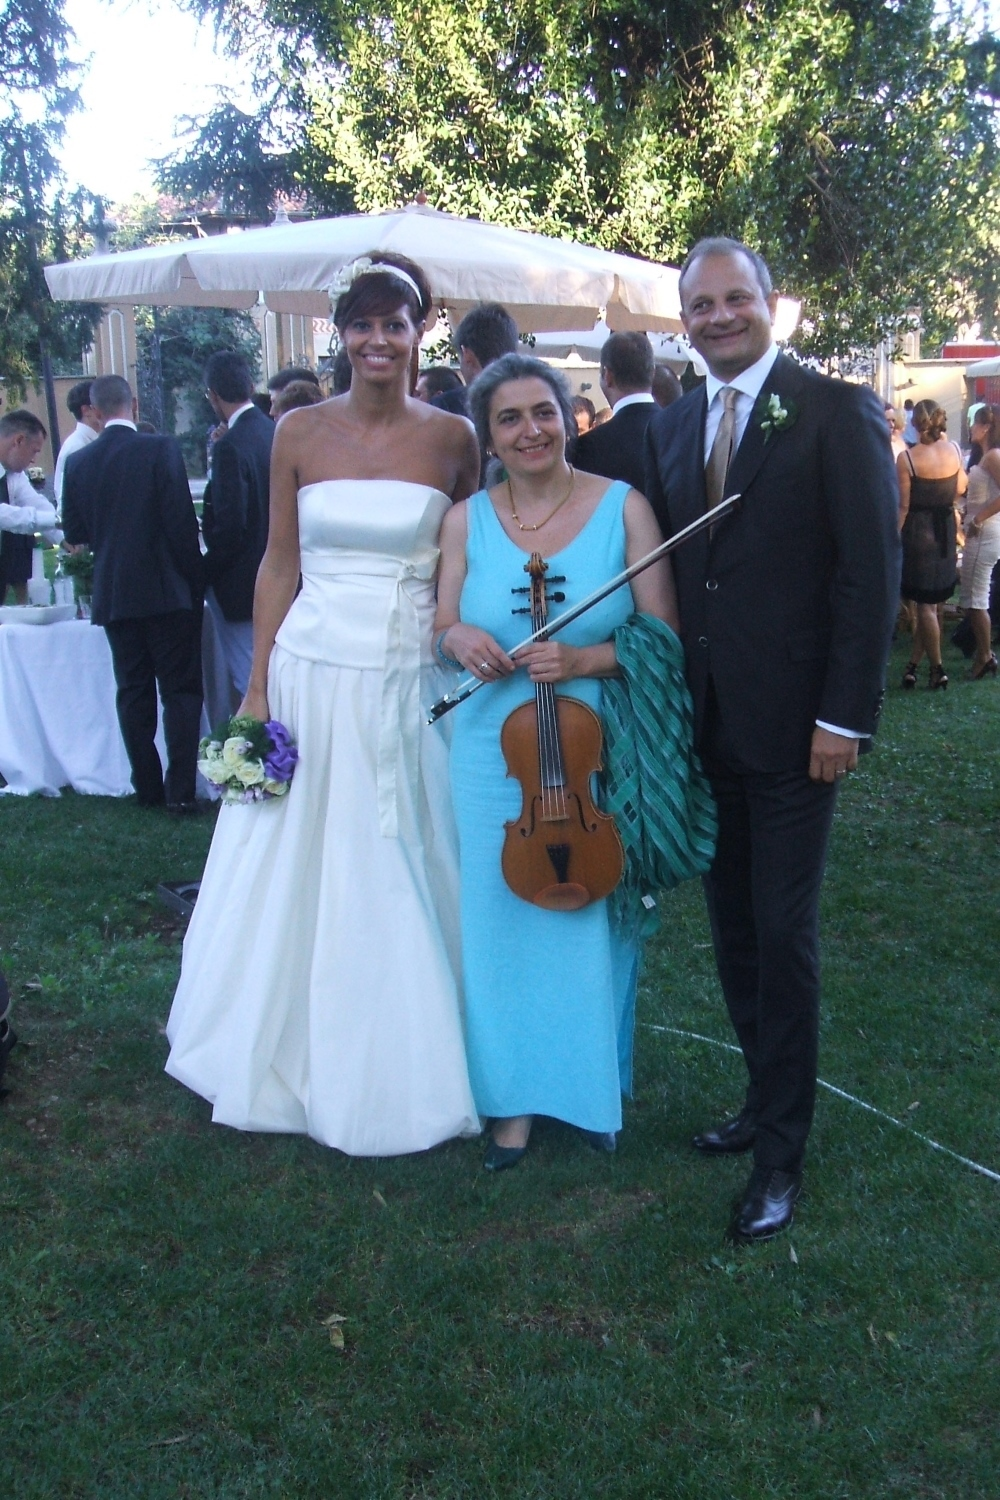 Wedding Musician at a wedding reception in the park